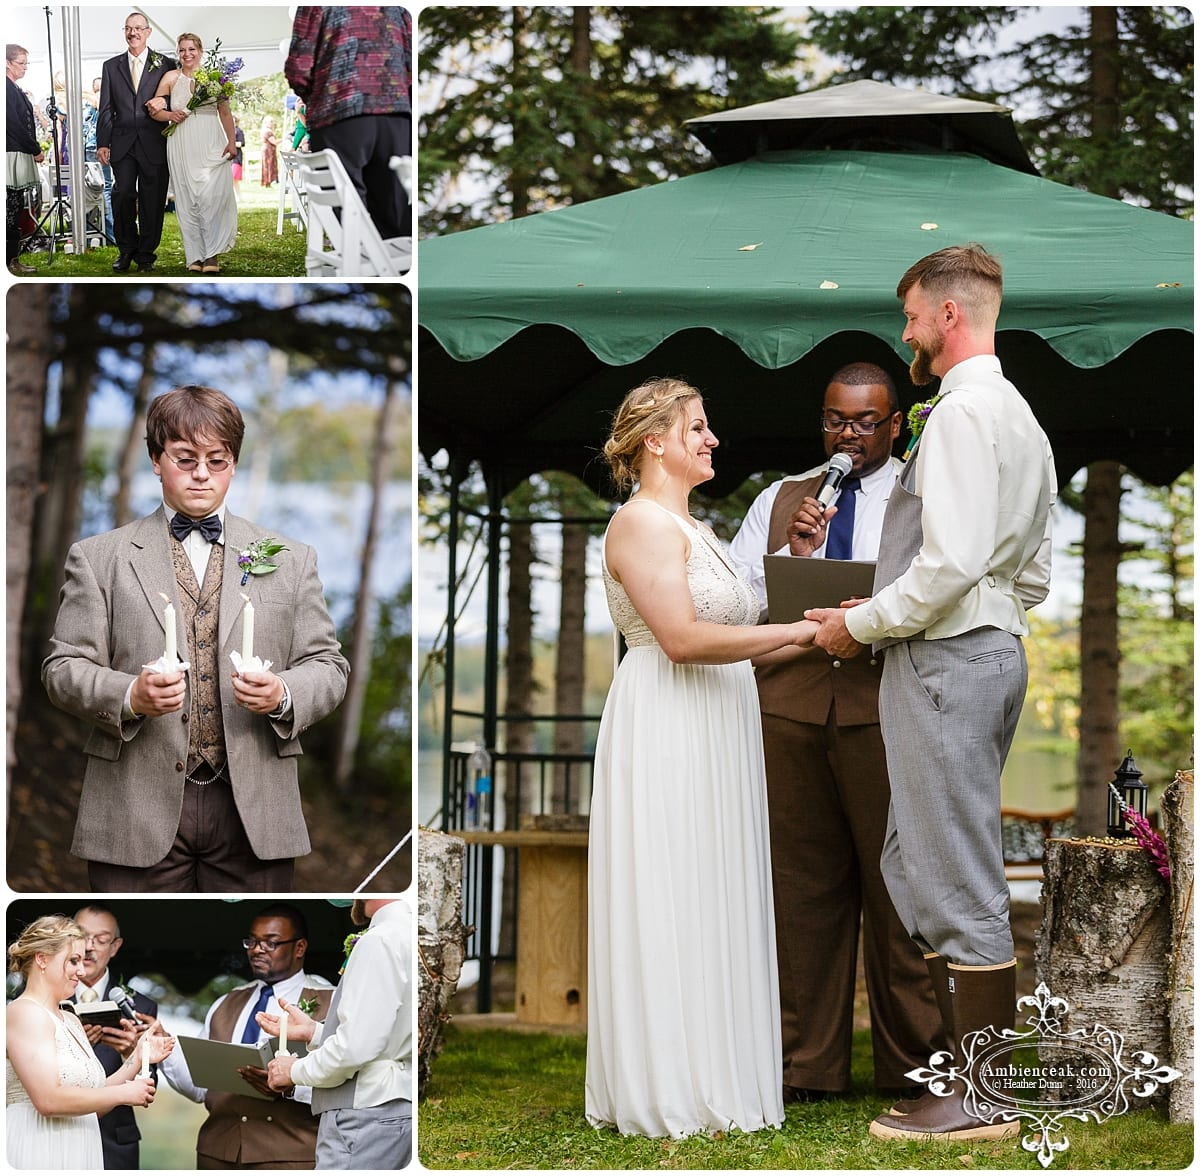 Ambience Photography,Heather Dunn,Photography in Alaska,Wasilla Alaska,Wasilla Alaska Ceremony,